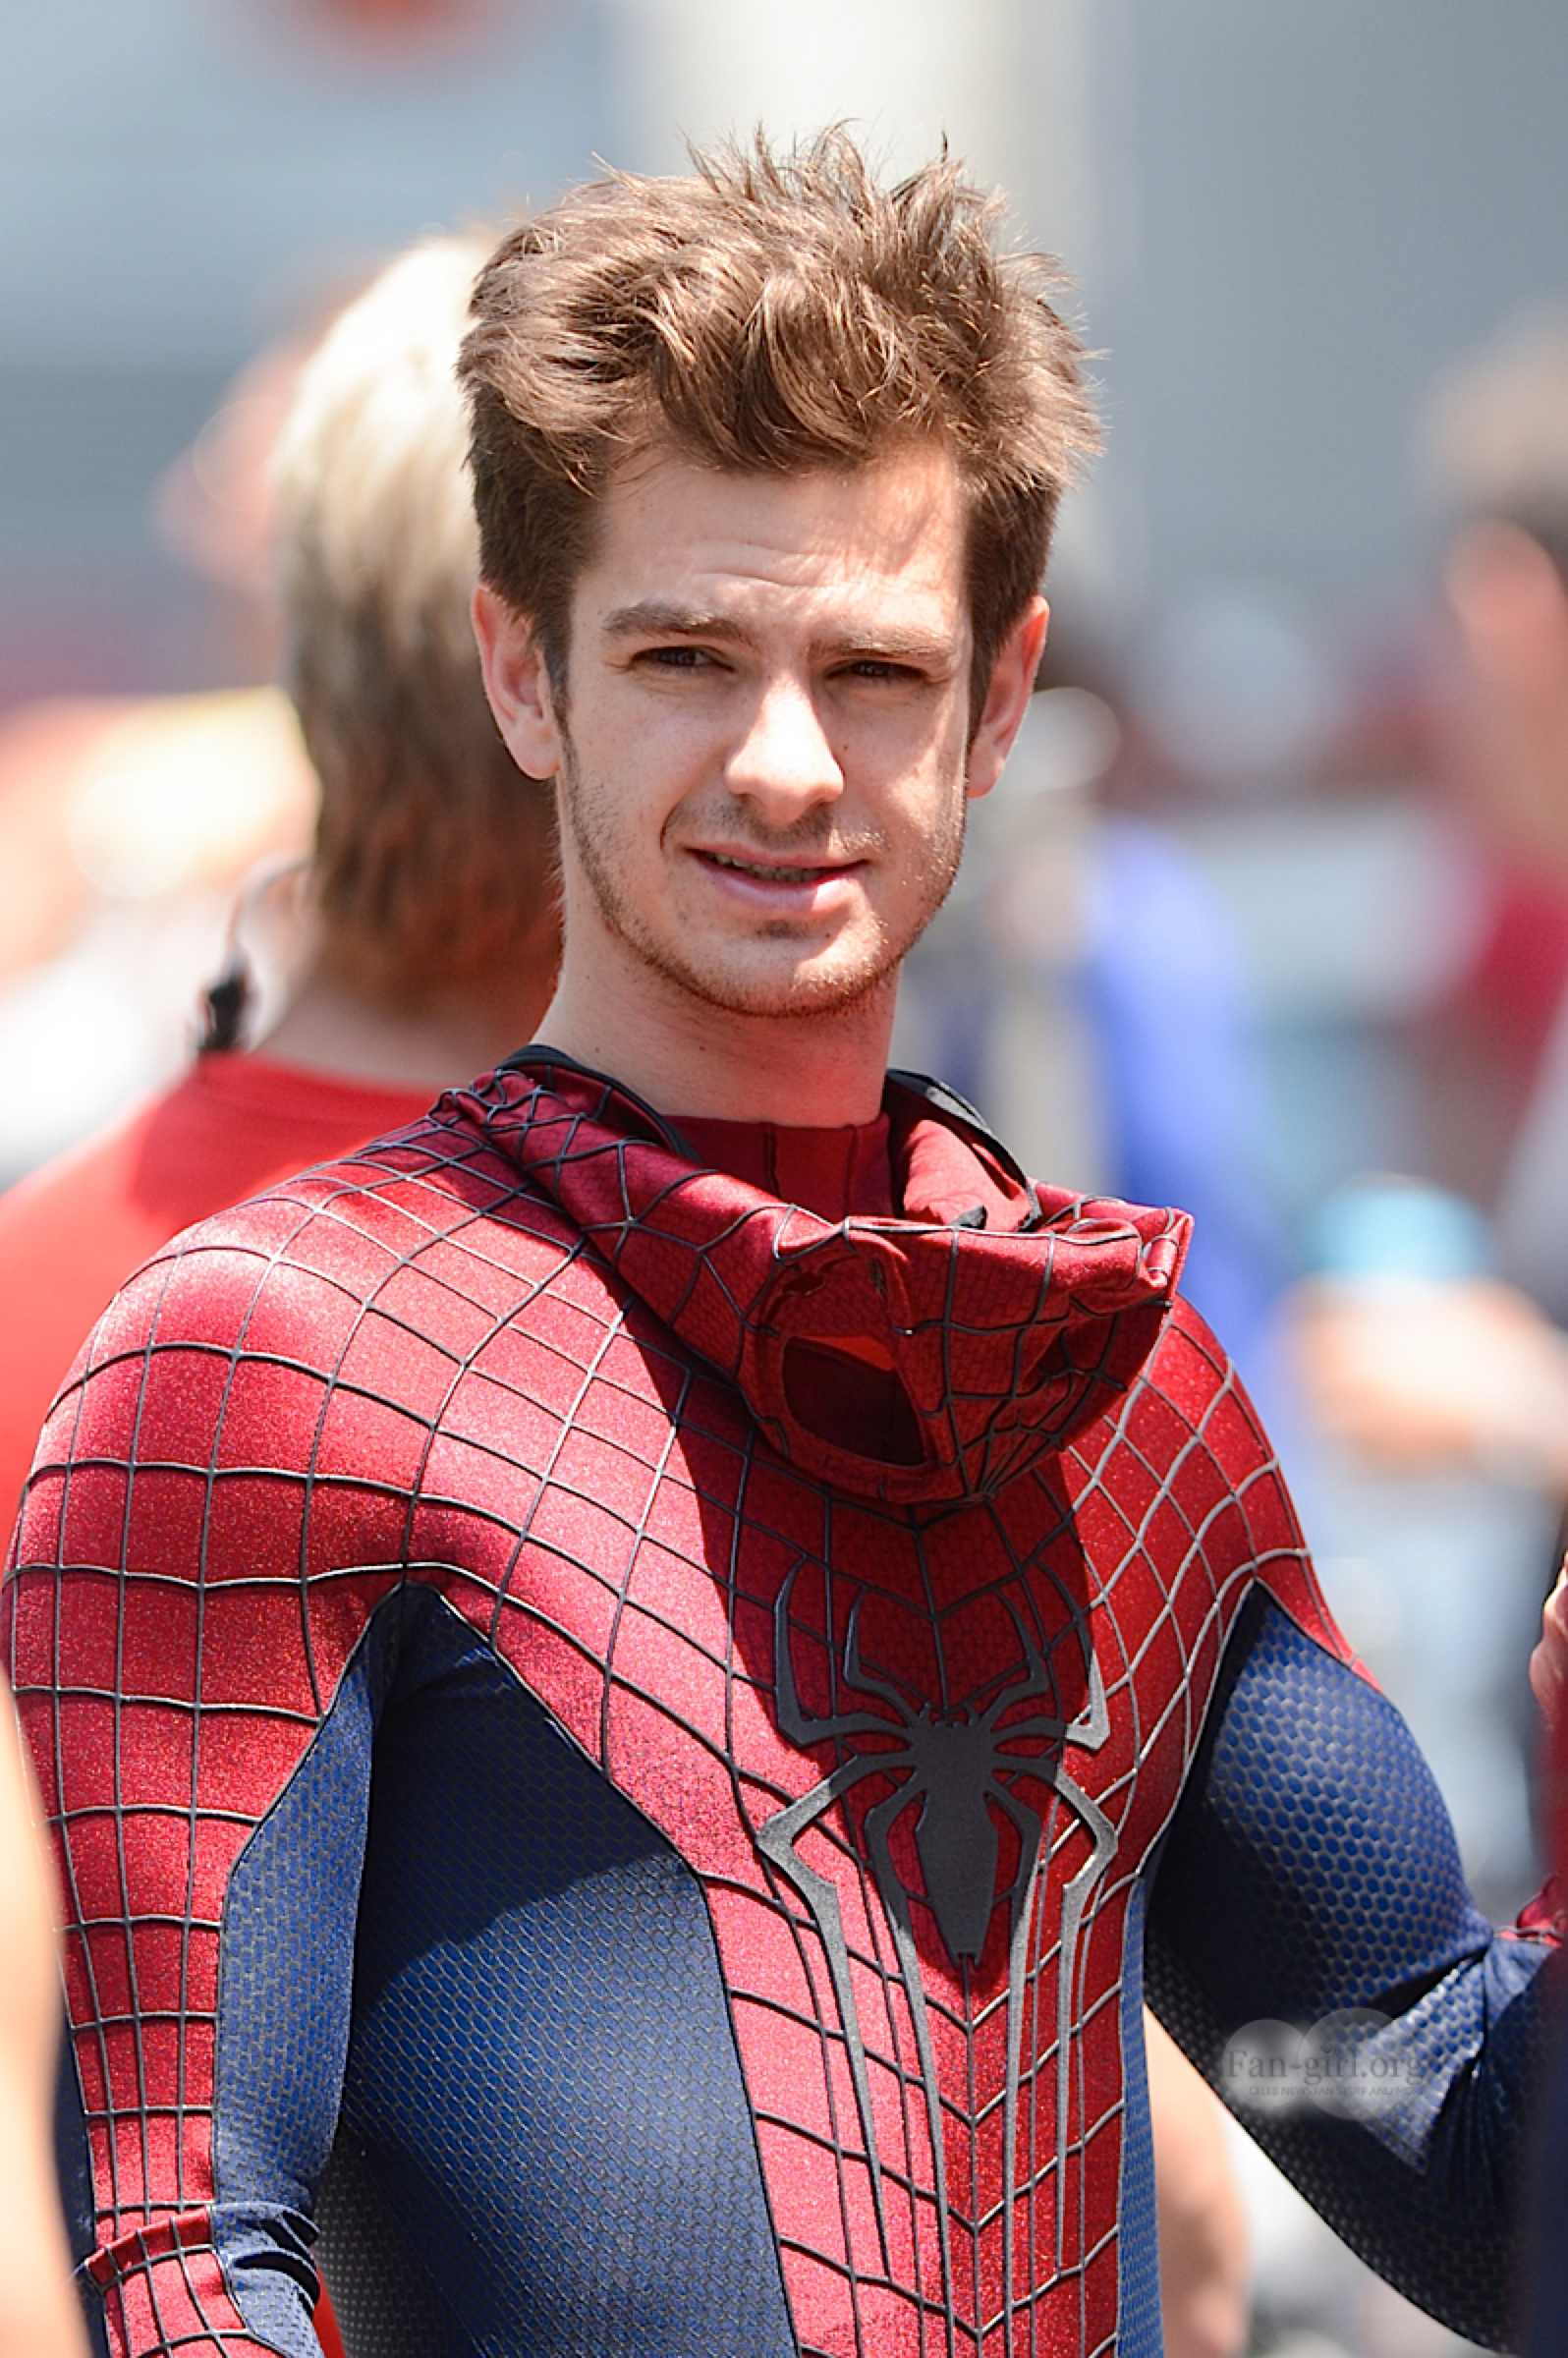 Andrew Garfield - Spider-Man - Top 10 Sexiest, Hottest Superheroes